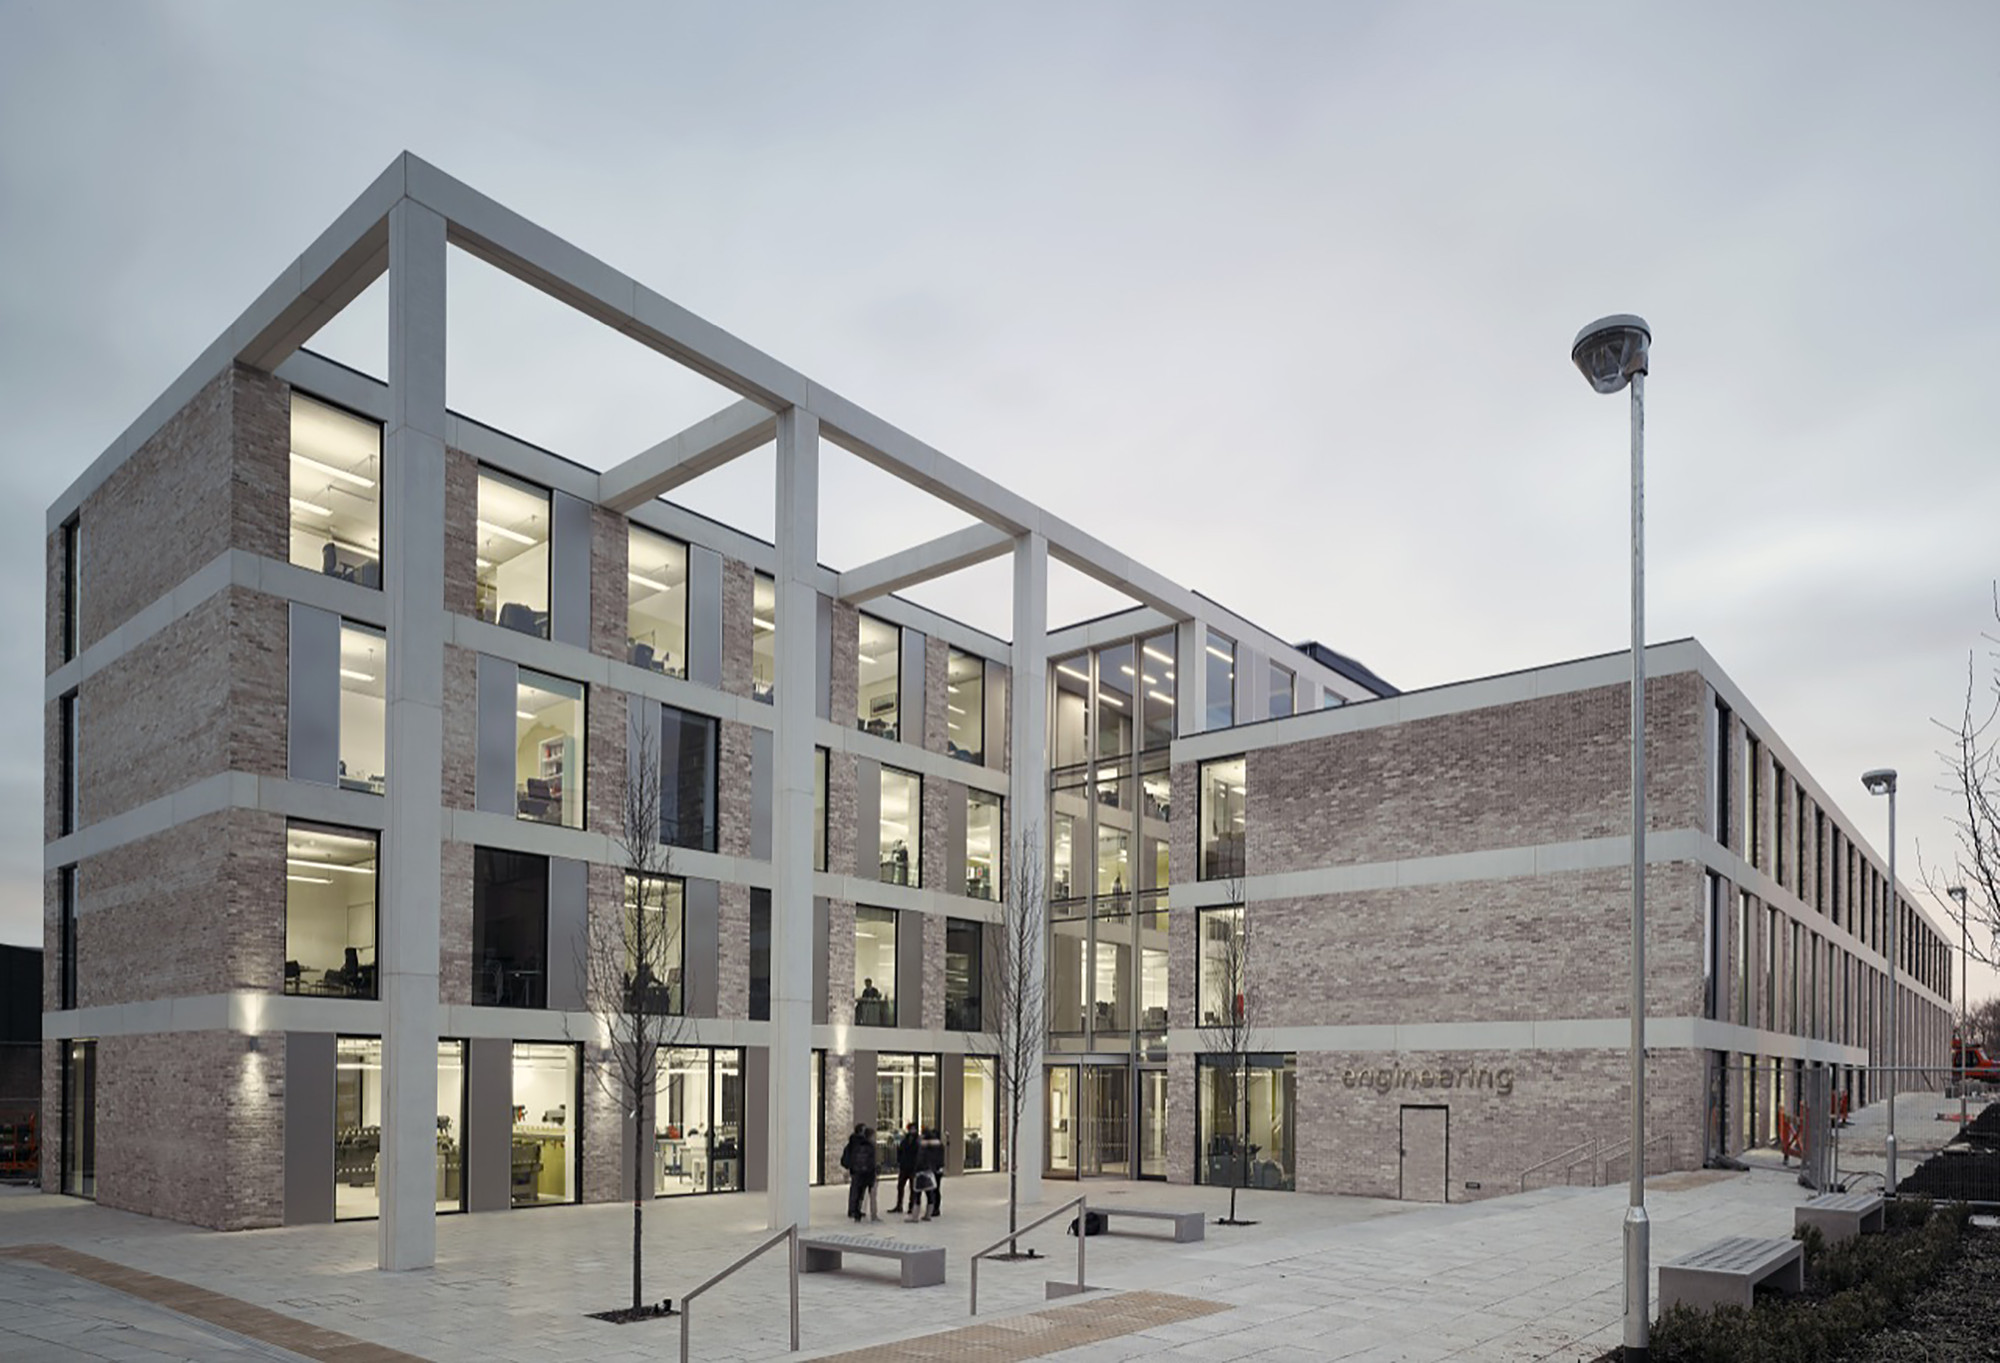 School of Engineering at Lancaster University / John McAslan + Partners, © Nick Gutteridge